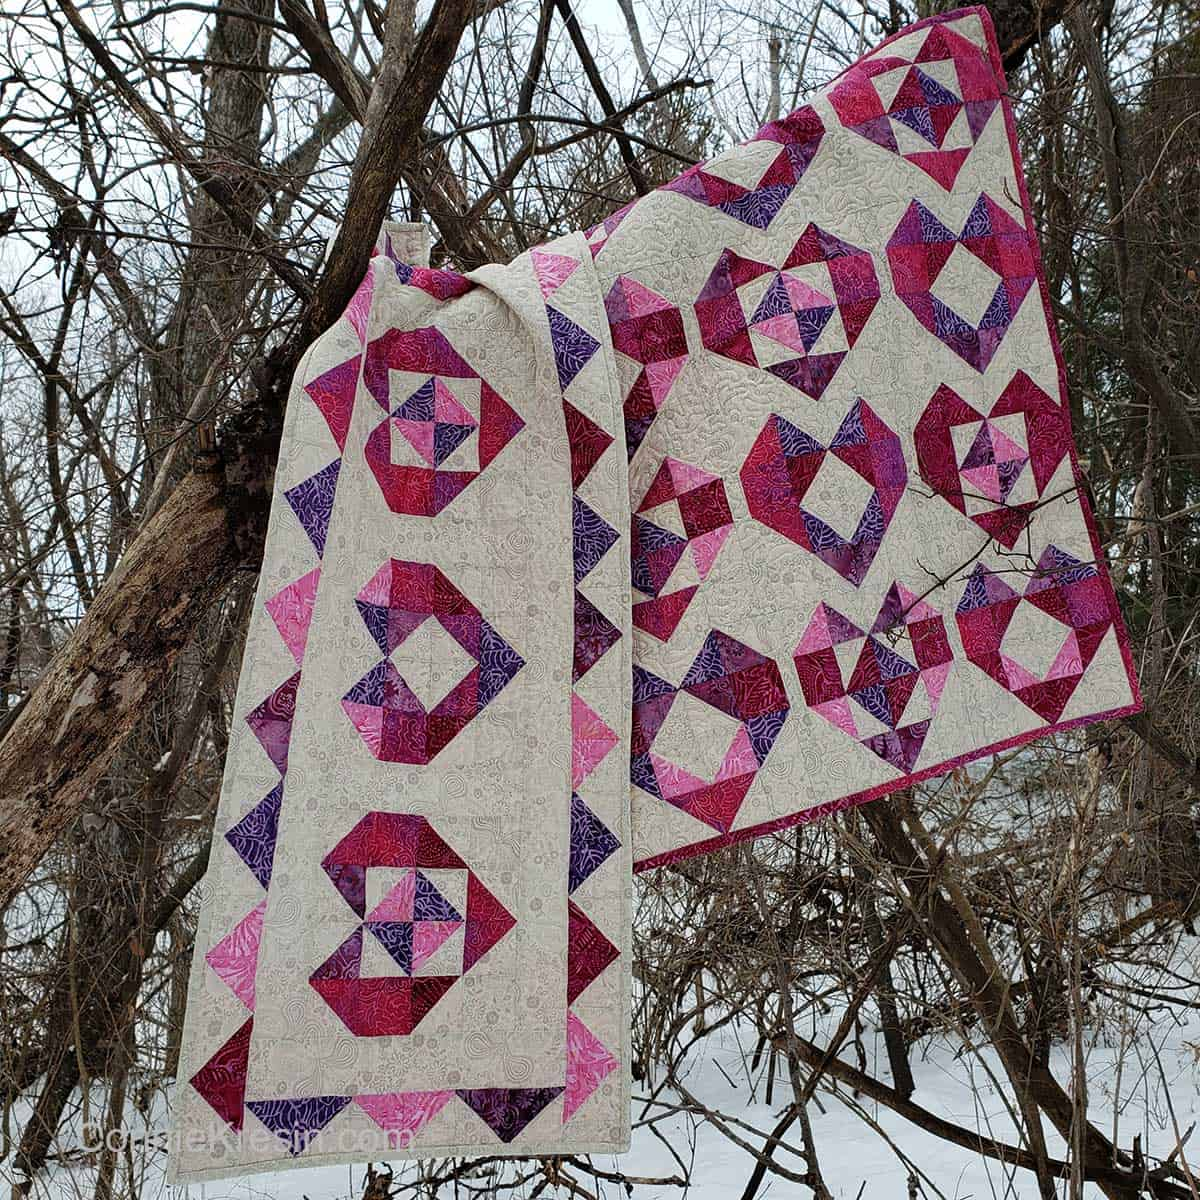 Batik Heart table runner and quilt in the woods